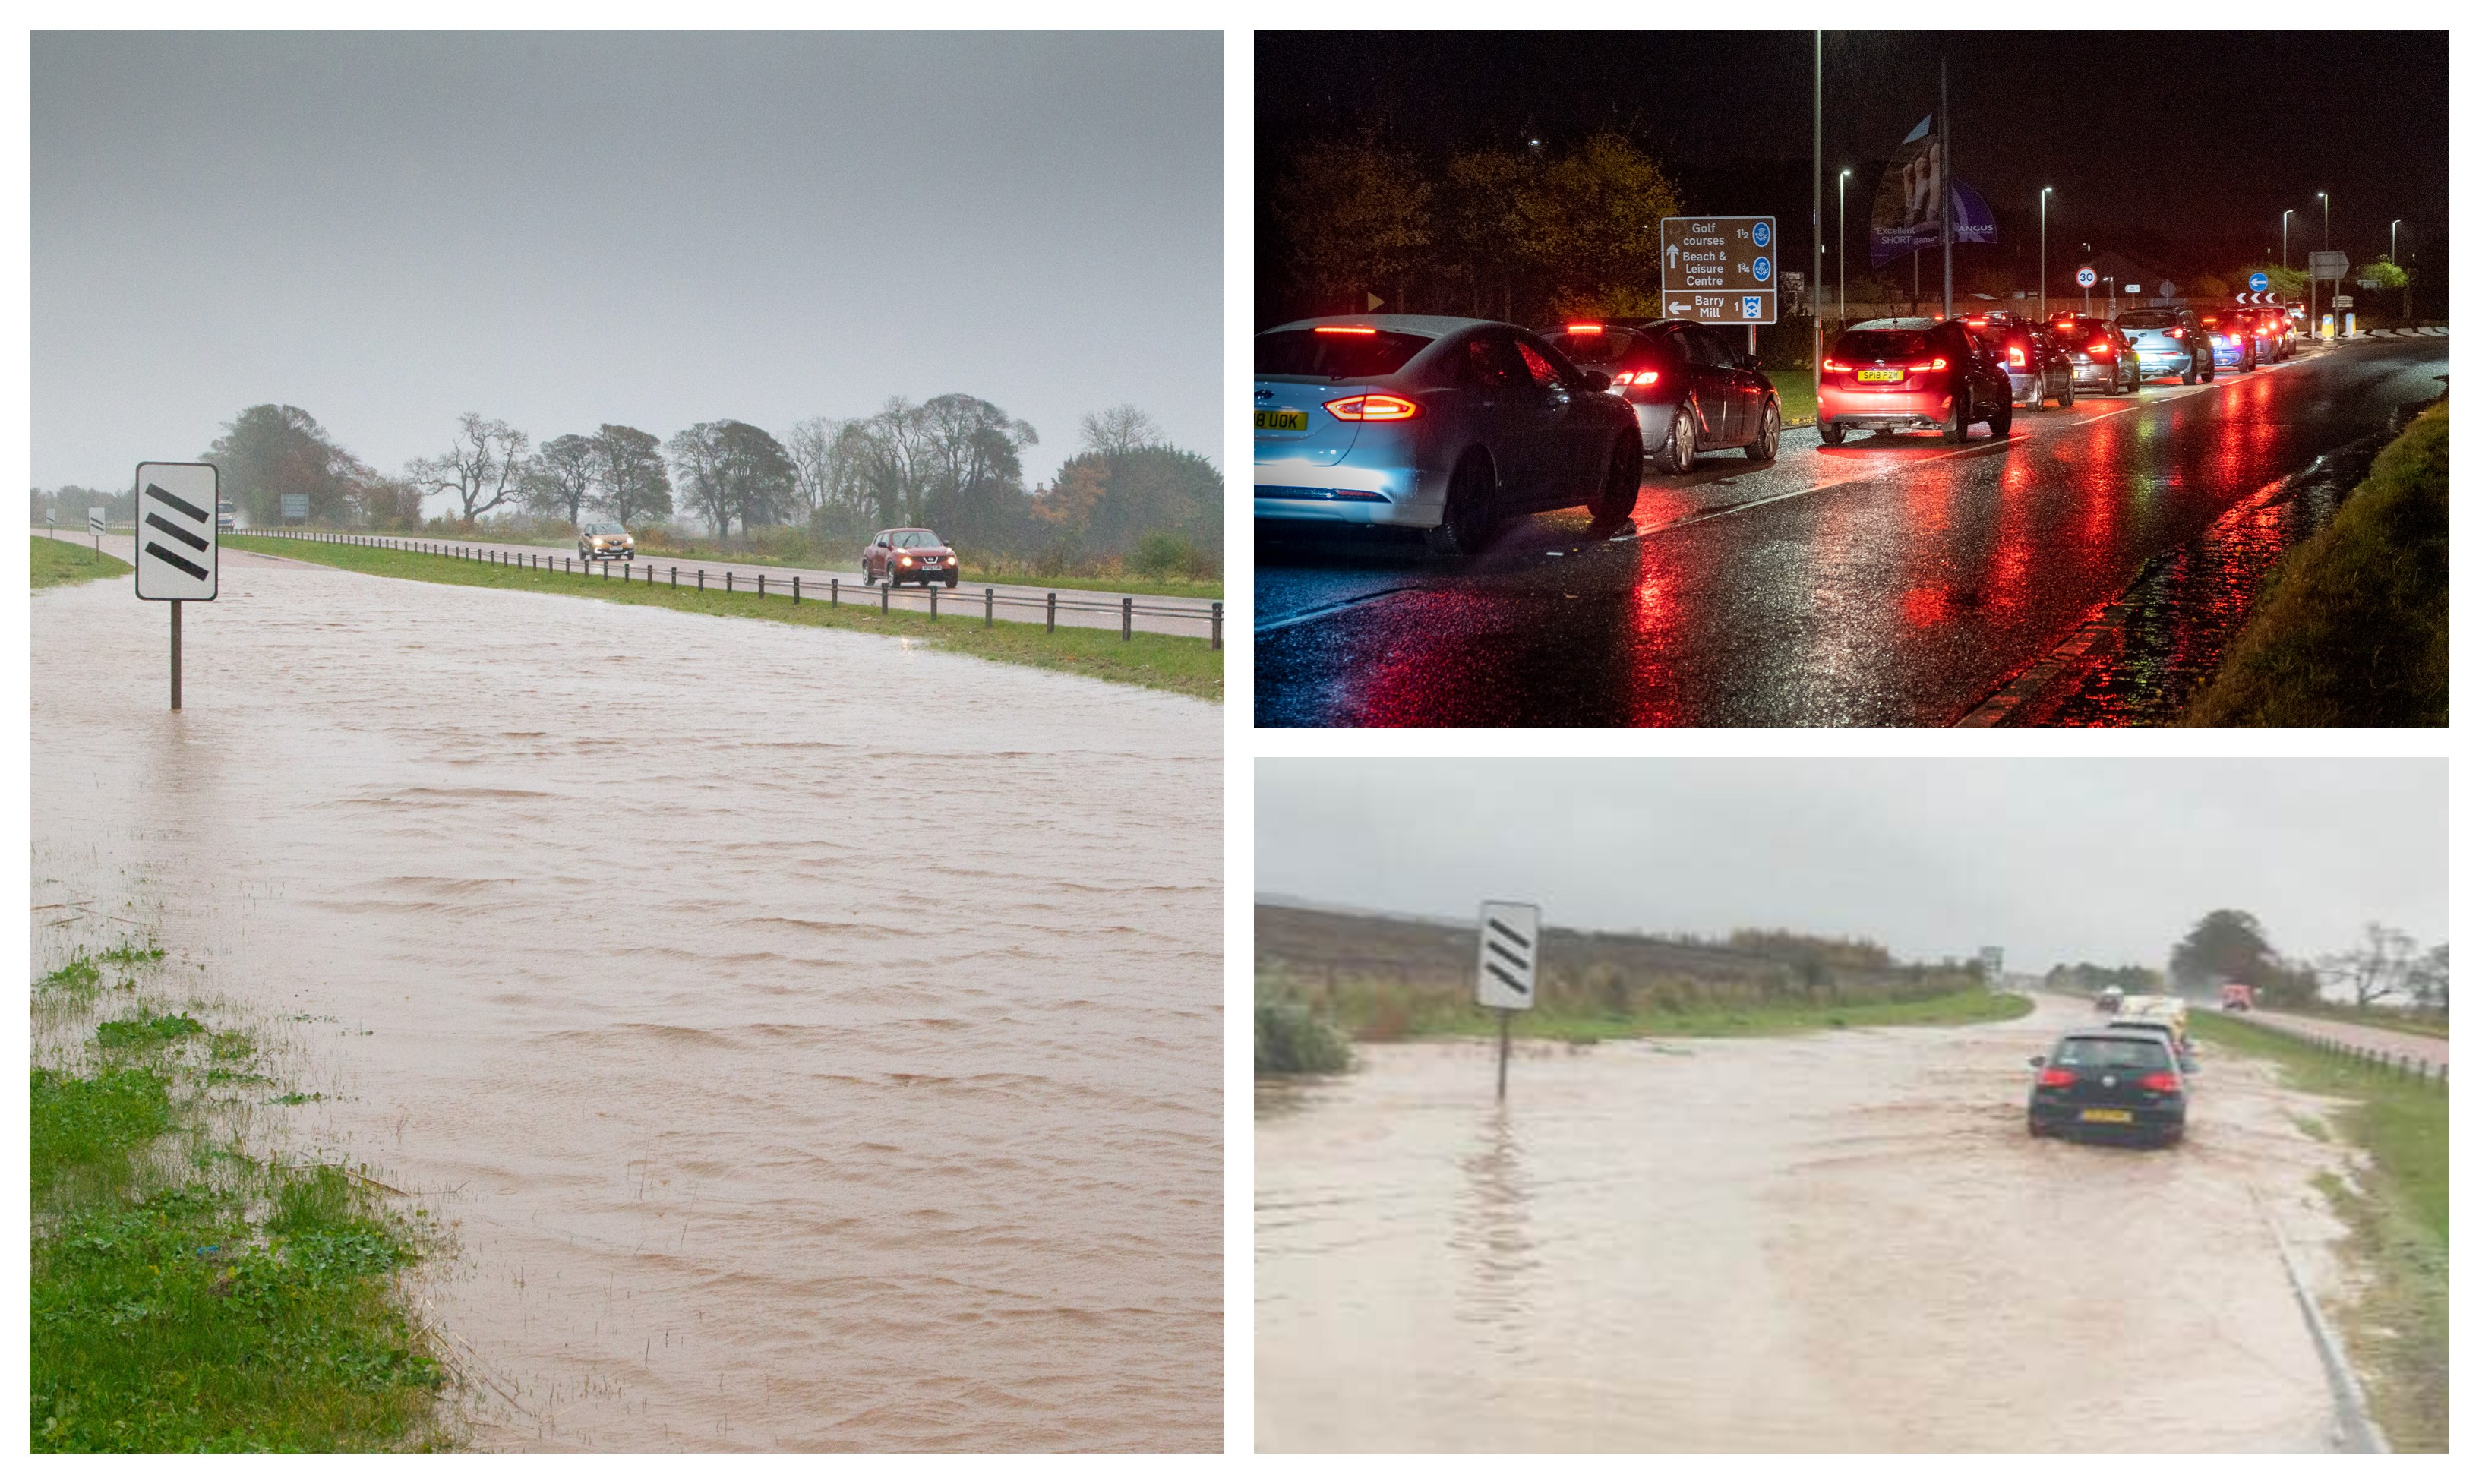 Flooding on the A92 and traffic near Carnoustie.